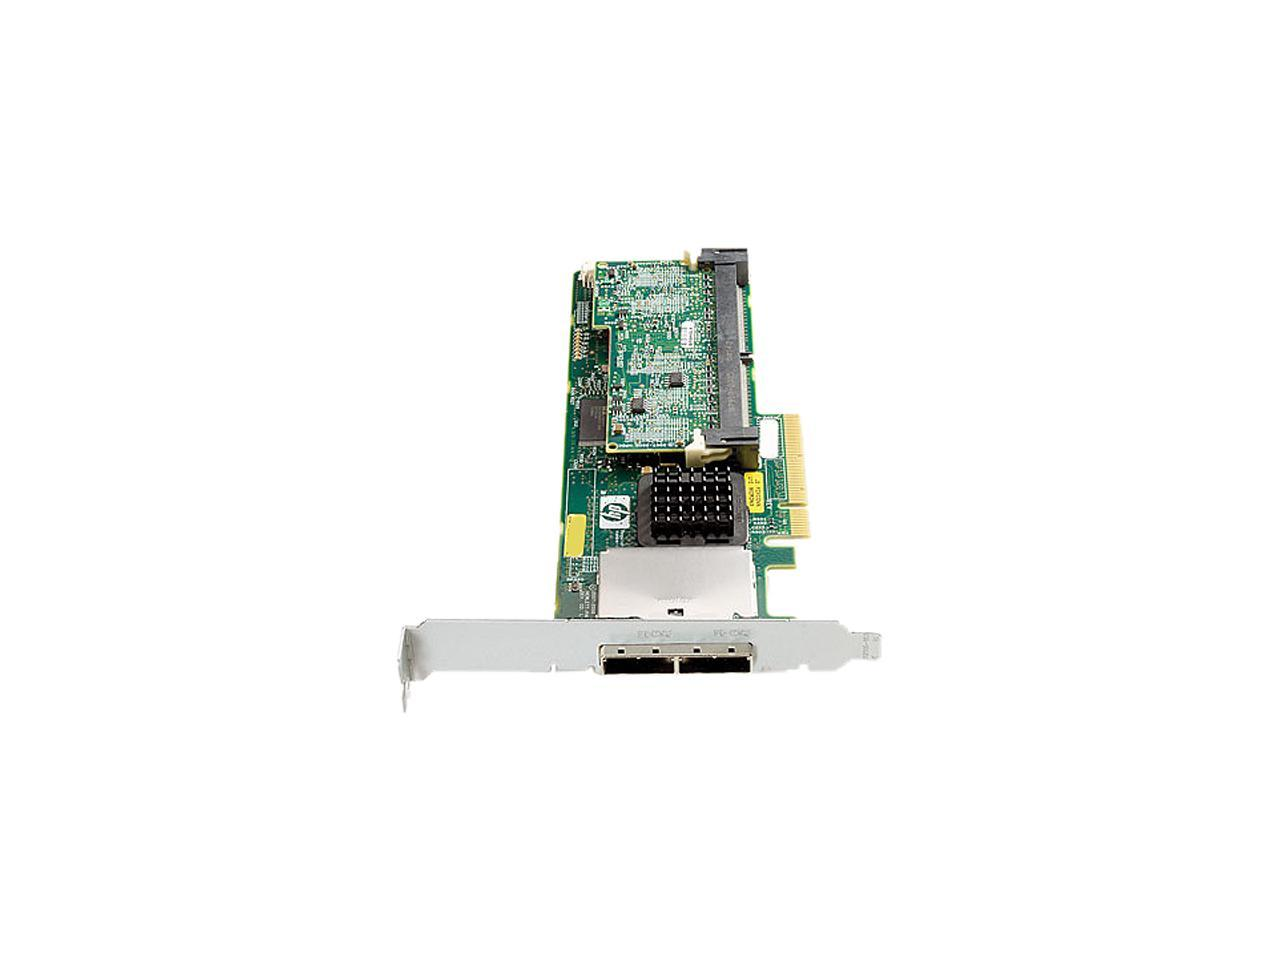 [HP] Smart Array P411 with 256MB Cache SAS Controller 2-Ports Ext - PCIe x 8 *리퍼제품*